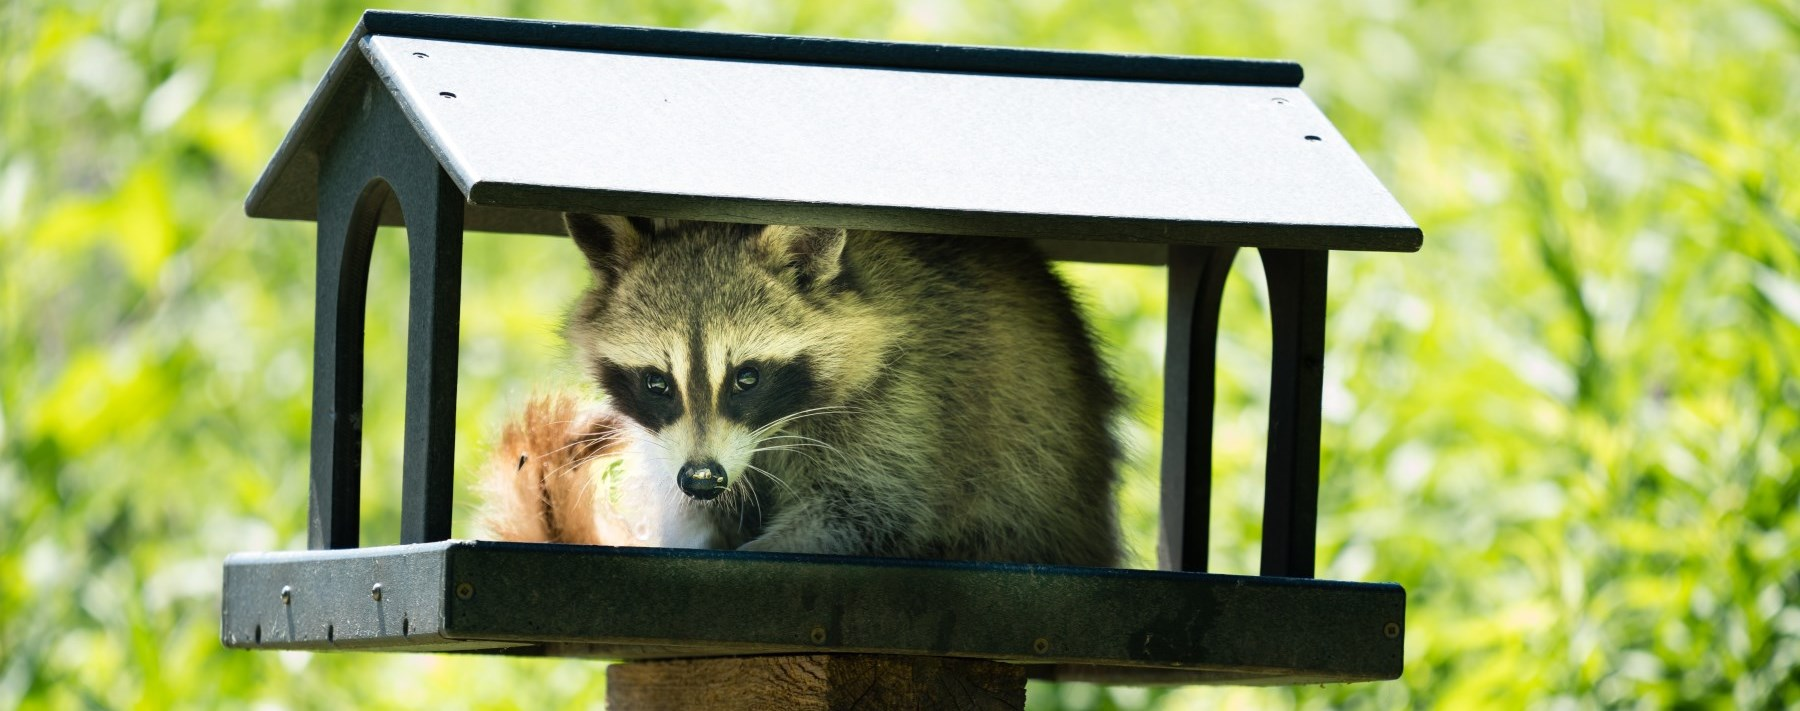 Grey raccoon sitting in a mailbox